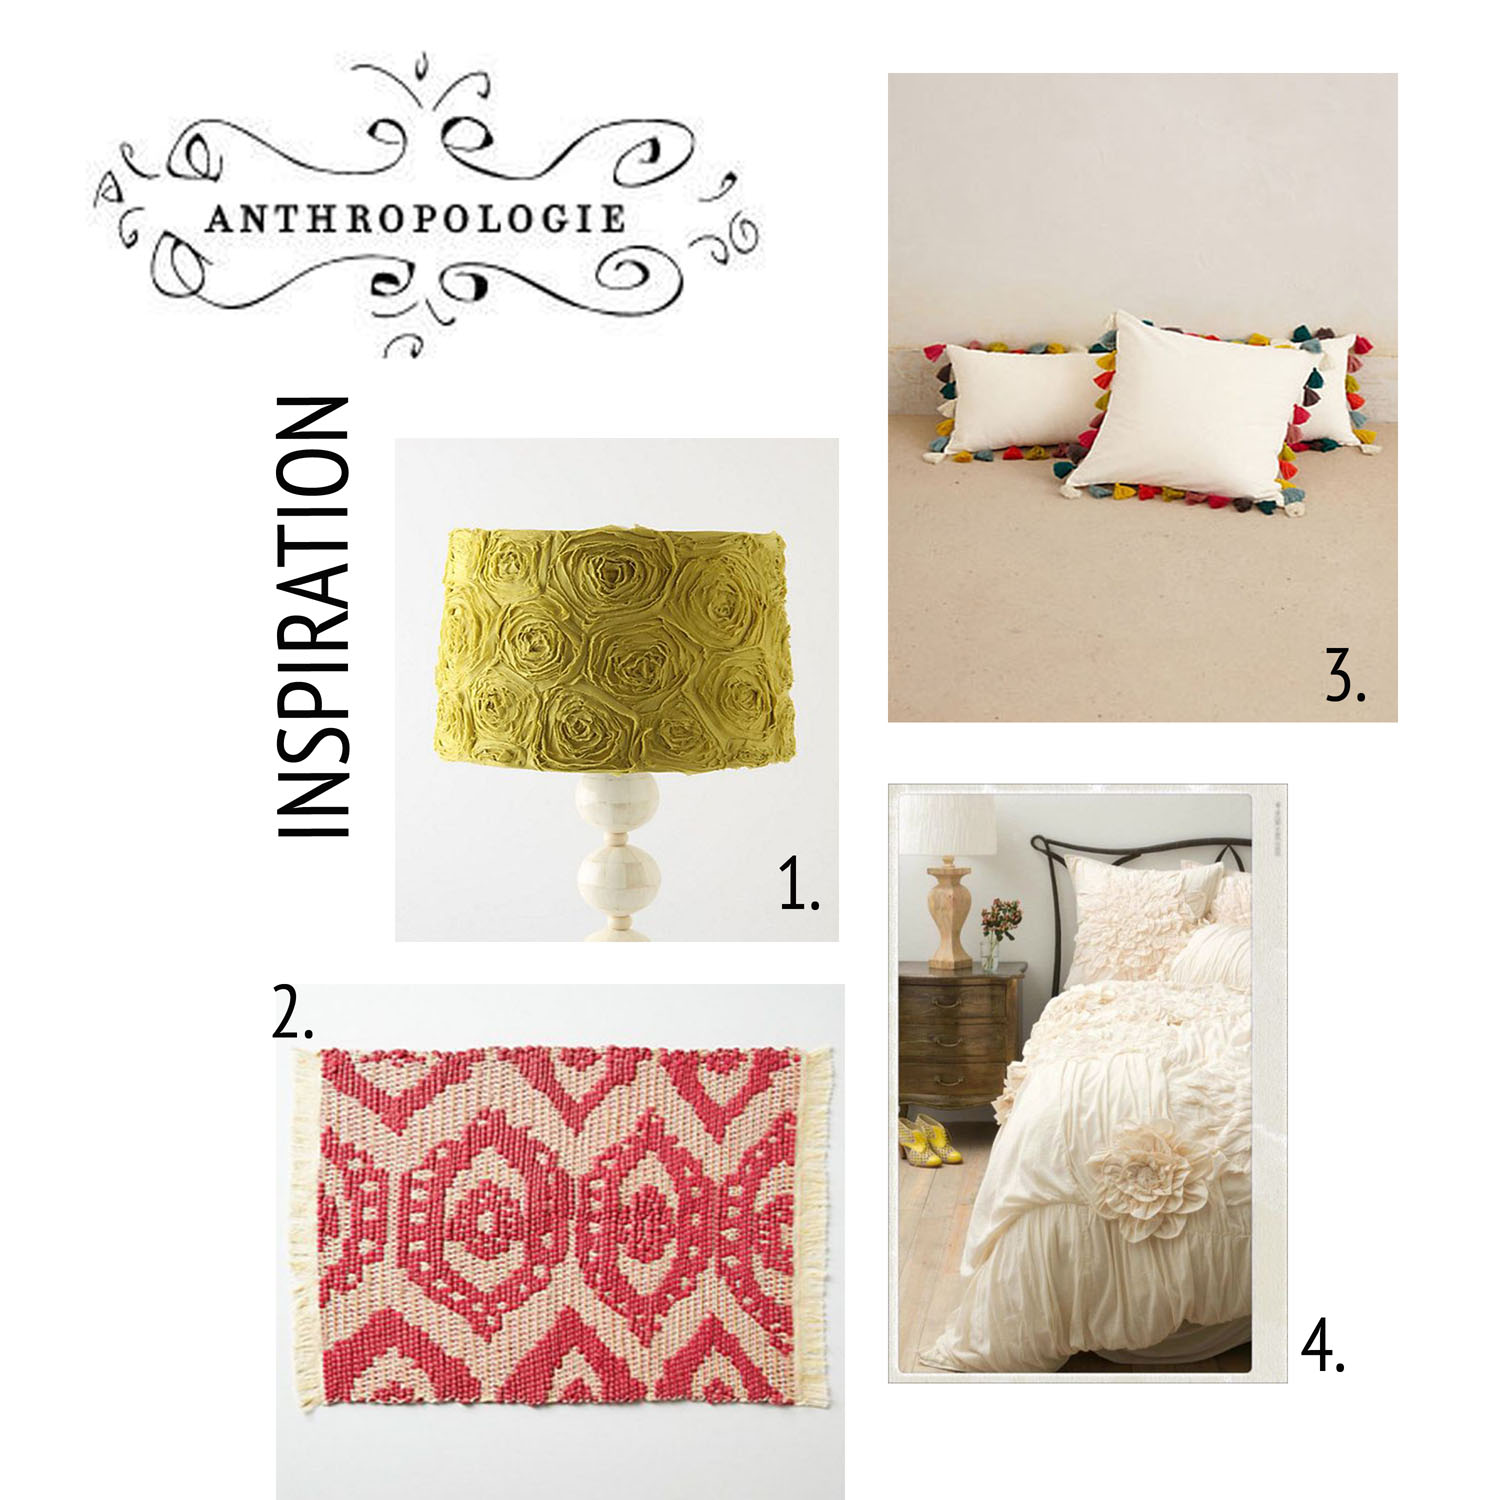 Anthropologie Inspiration Board